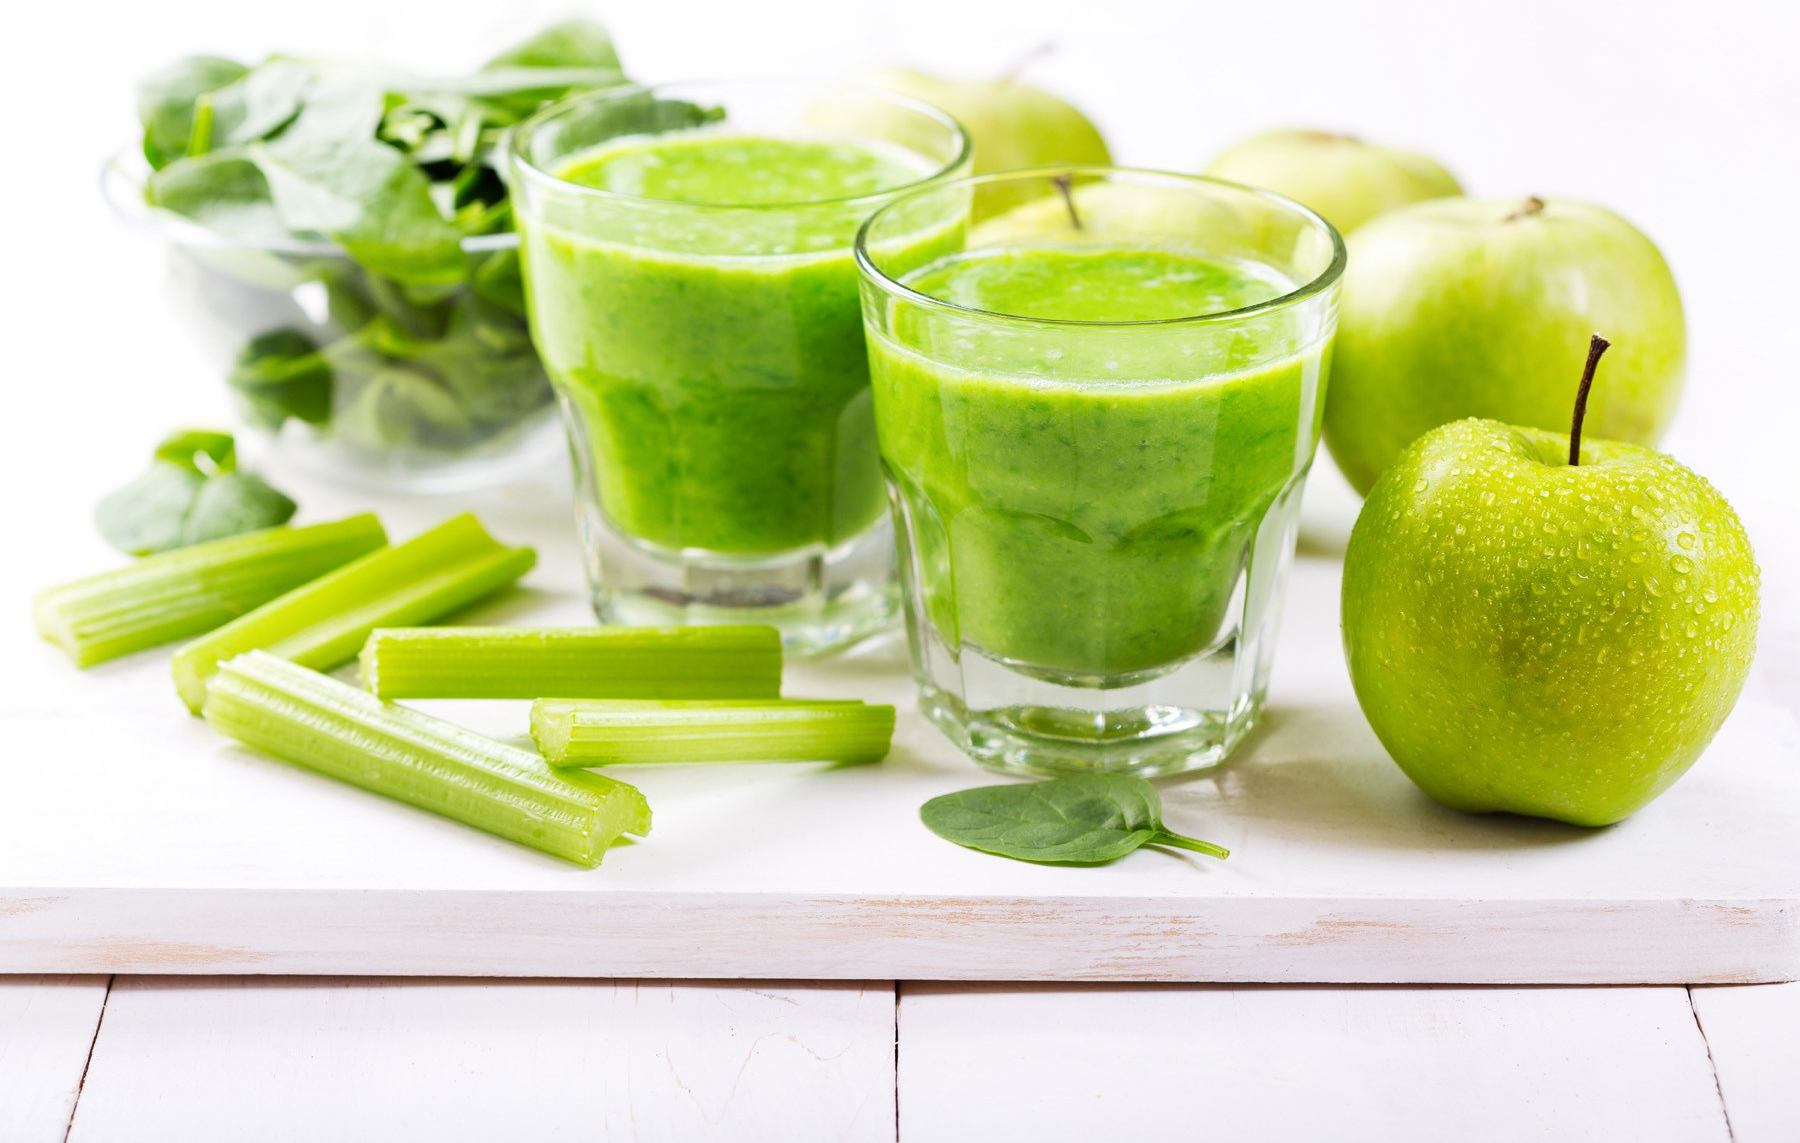 52042-green-apple-and-fresh-juices.jpg